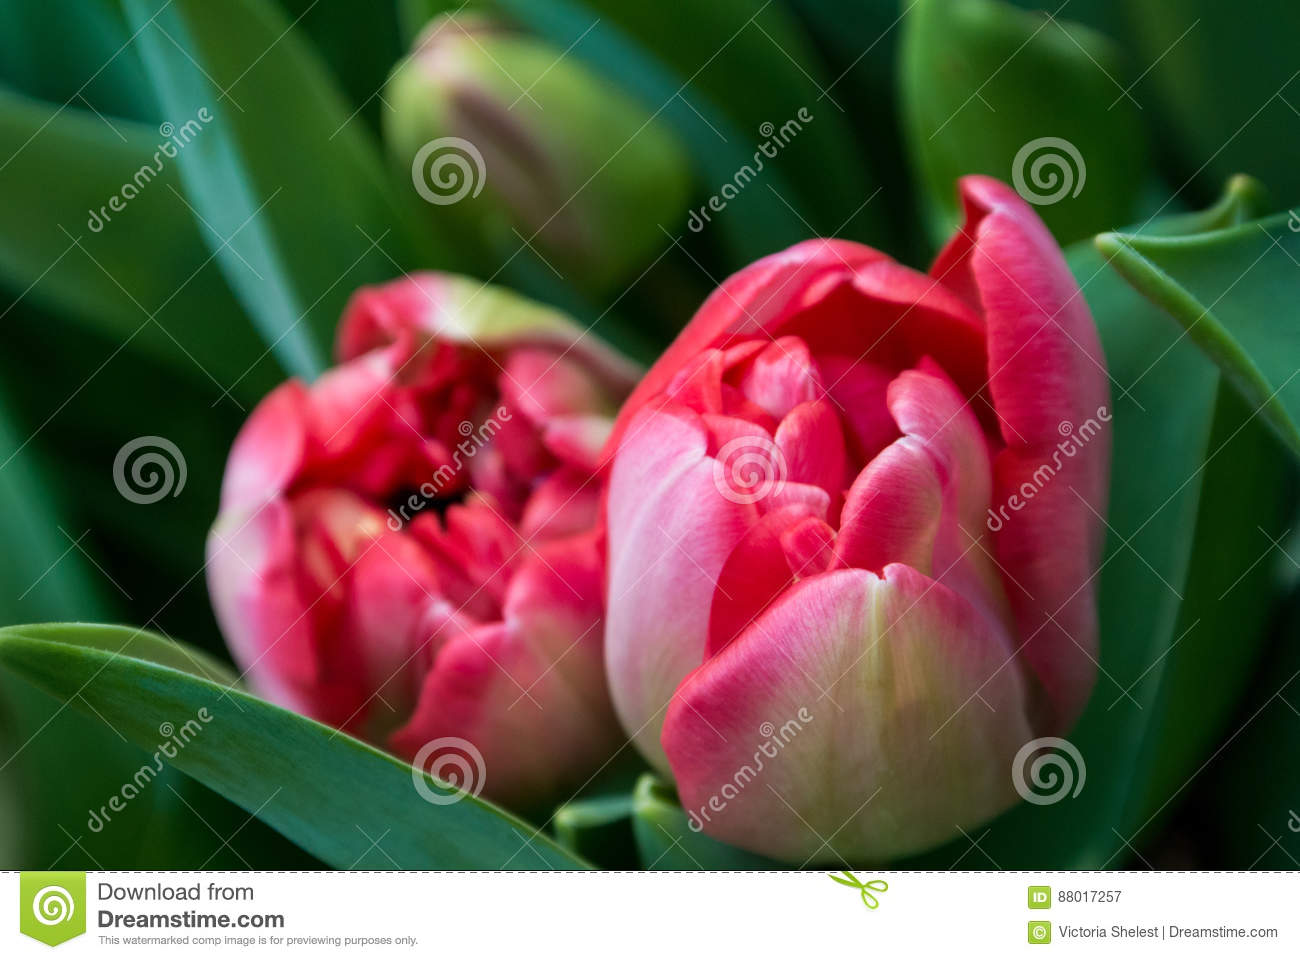 Close-up of pink tulip flowers and dark green leaves